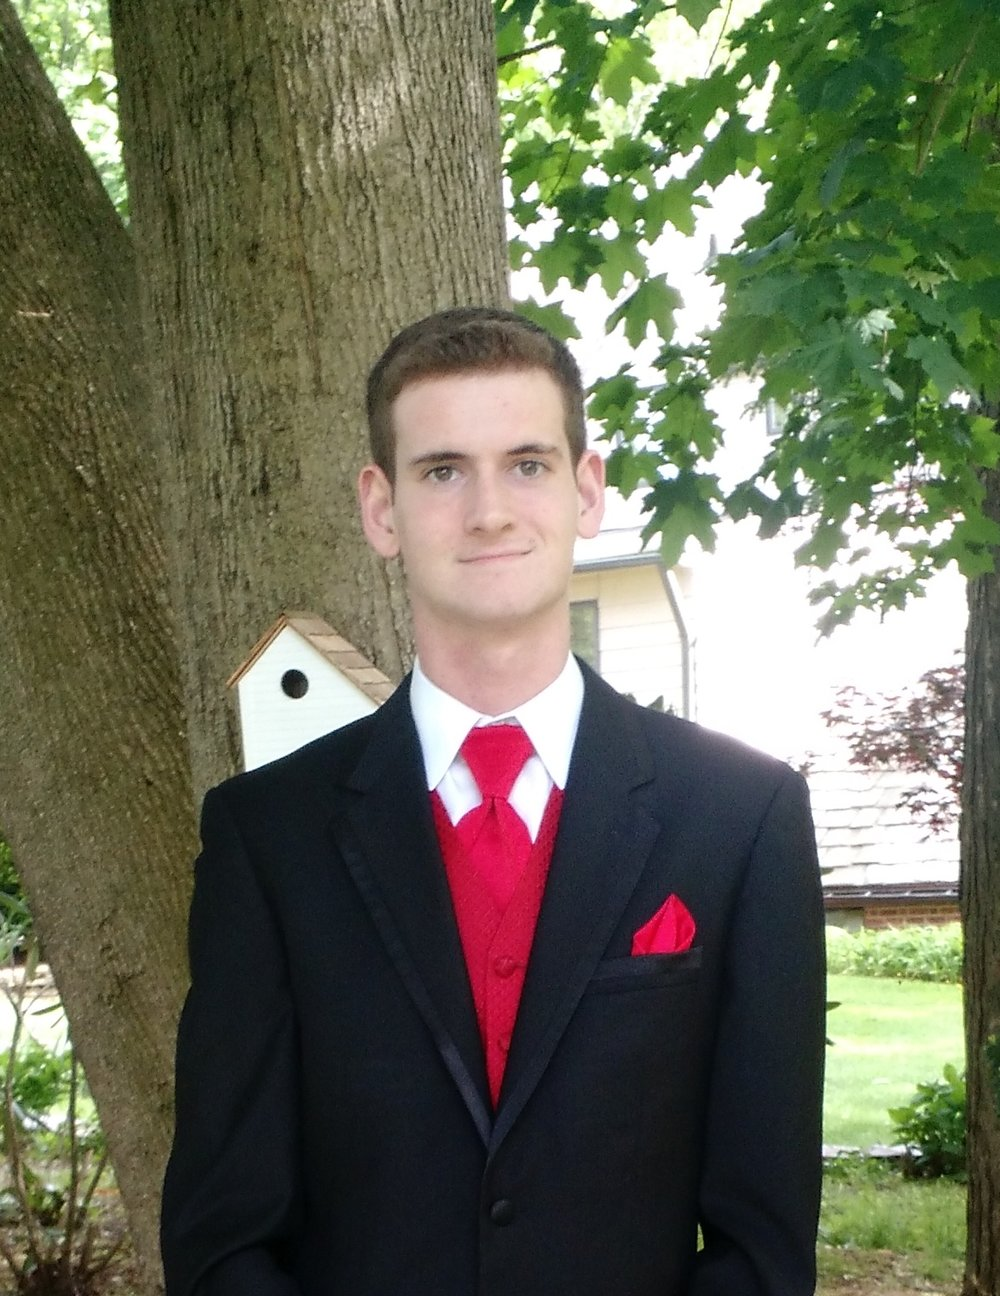 Colin Donahue - Student InternSince graduating Hamden High School and Milestone C's Introduction to Engineering & Aviation program, Colin has been attending Western New England University where he is pursuing a degree in Mechanical Engineering.